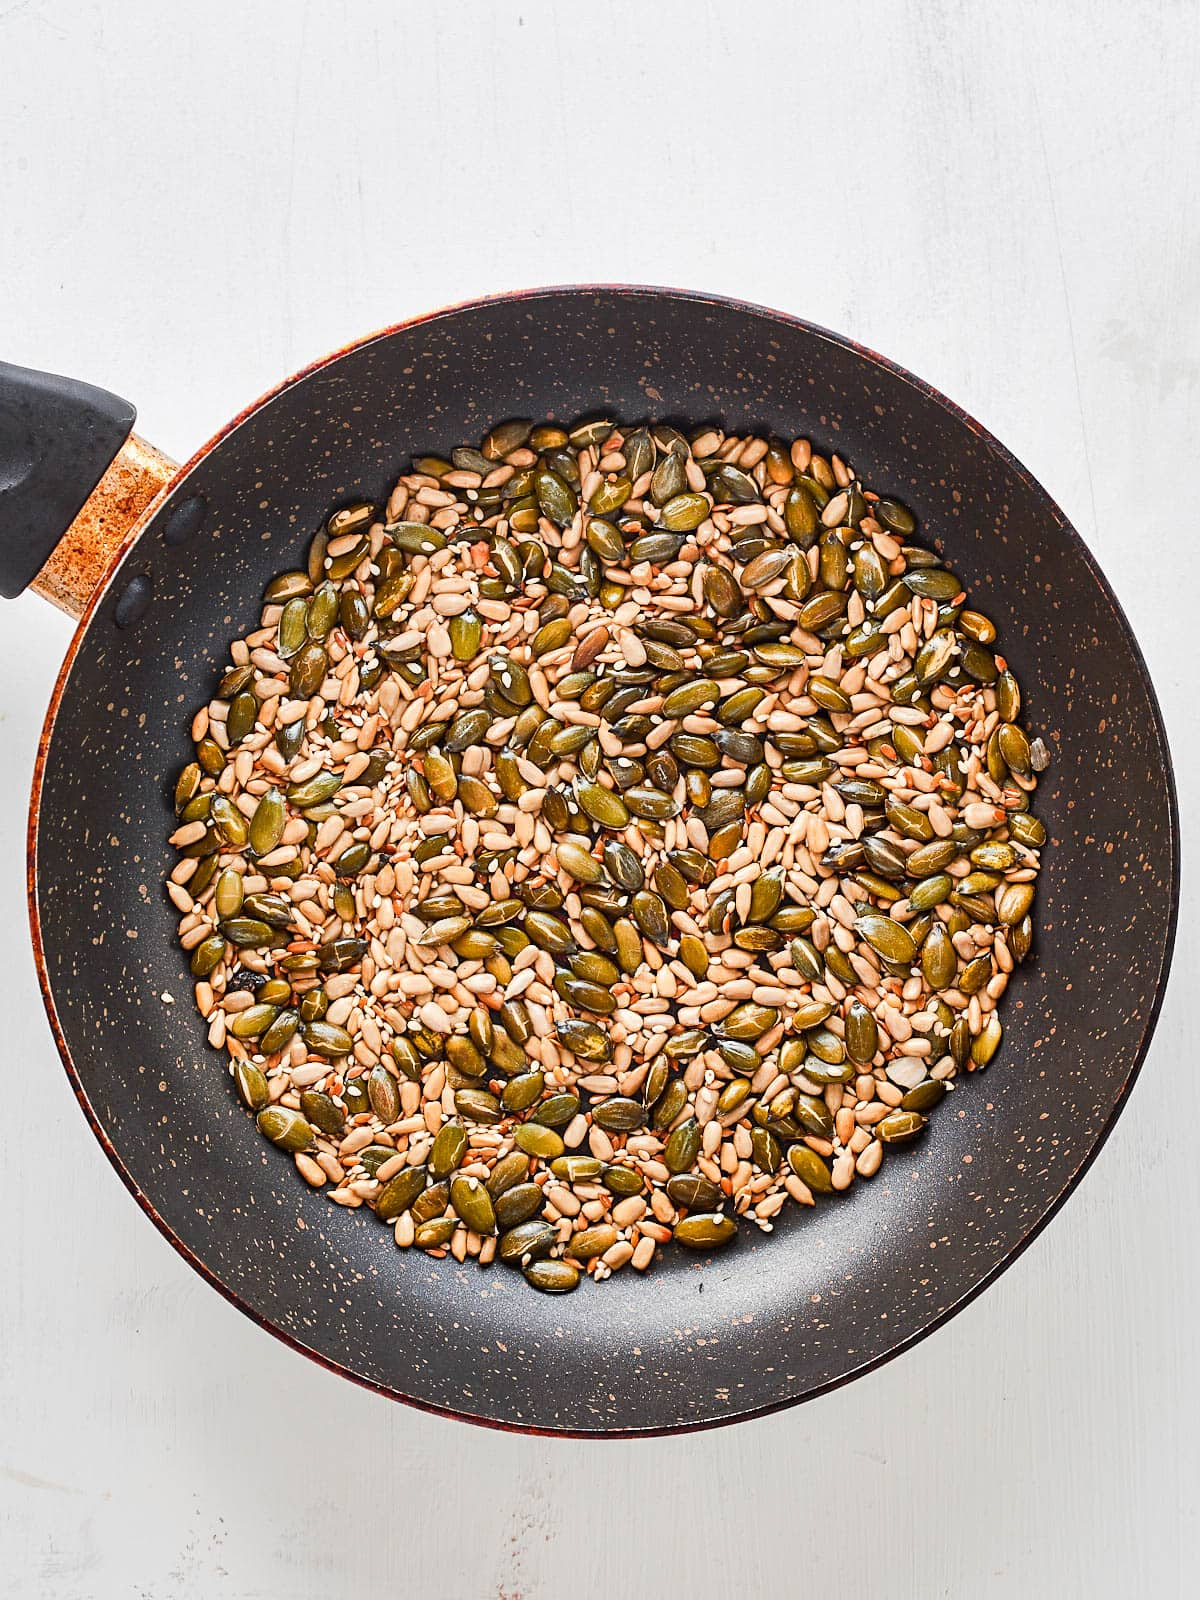 Toasting seeds in a frying pan